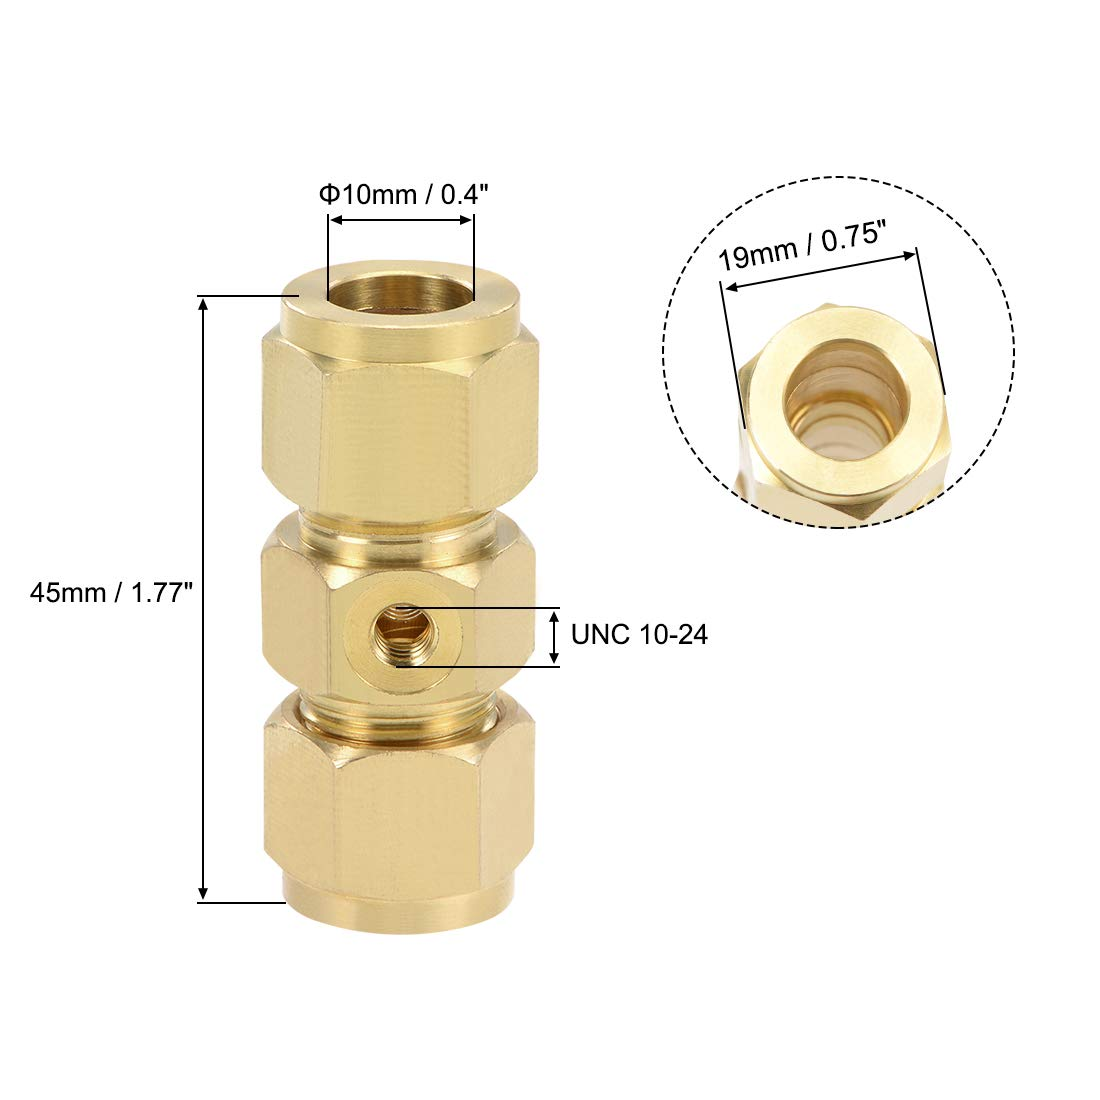 uxcell Brass Compression Tube Fitting 10mm OD Straight UNC 10-24 Thread Nozzle Hole Pipe Adapter for Water Garden Irrigation System